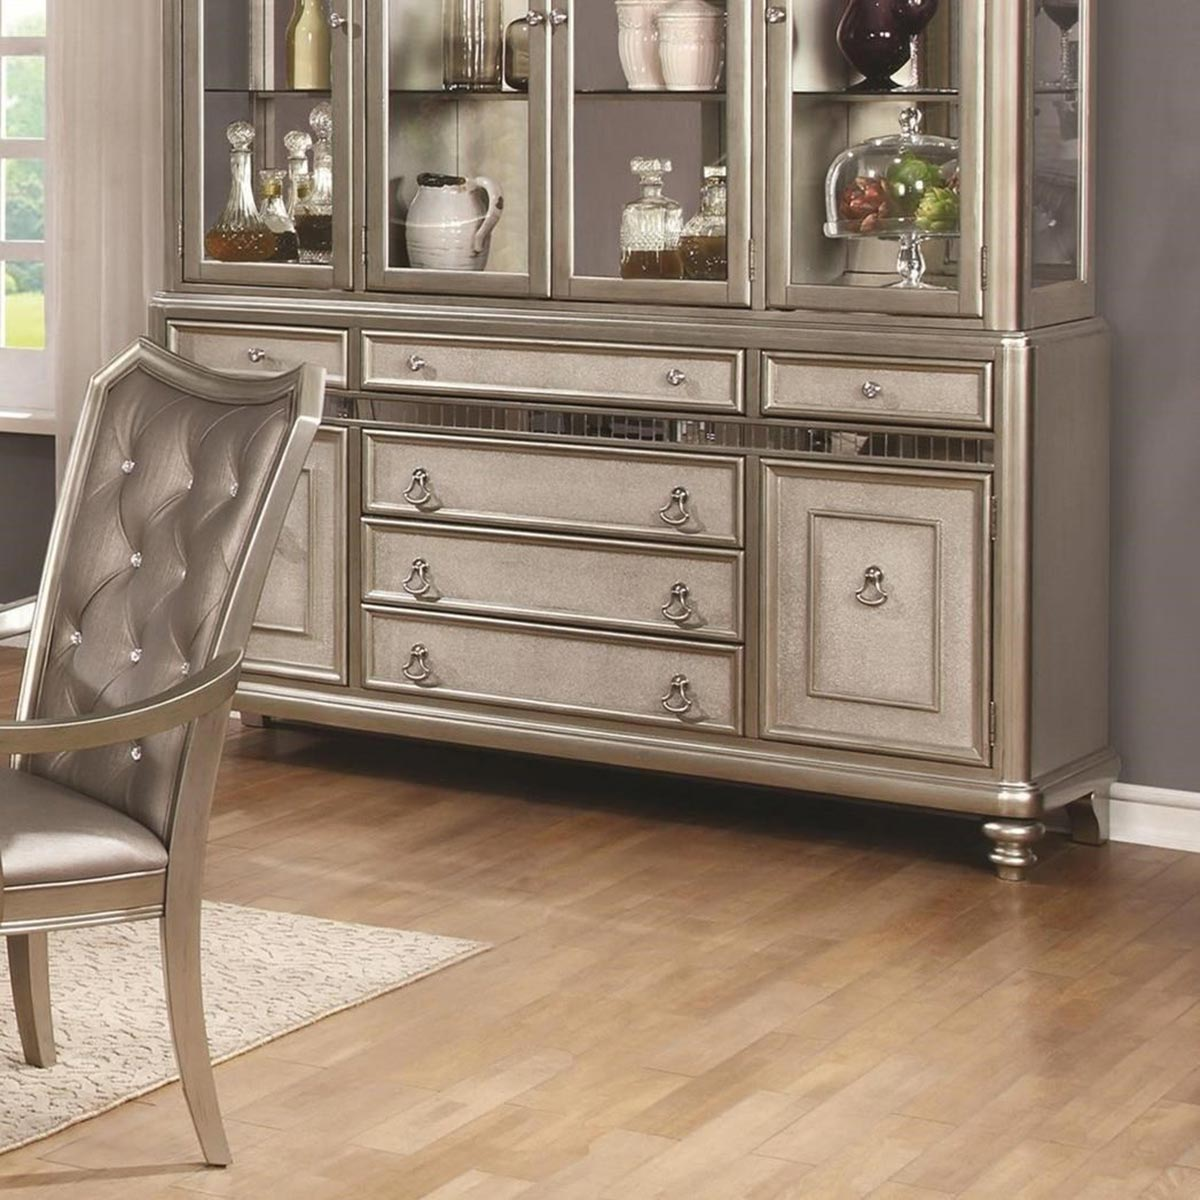 Coaster Danette Buffet Server - Metallic Platinum